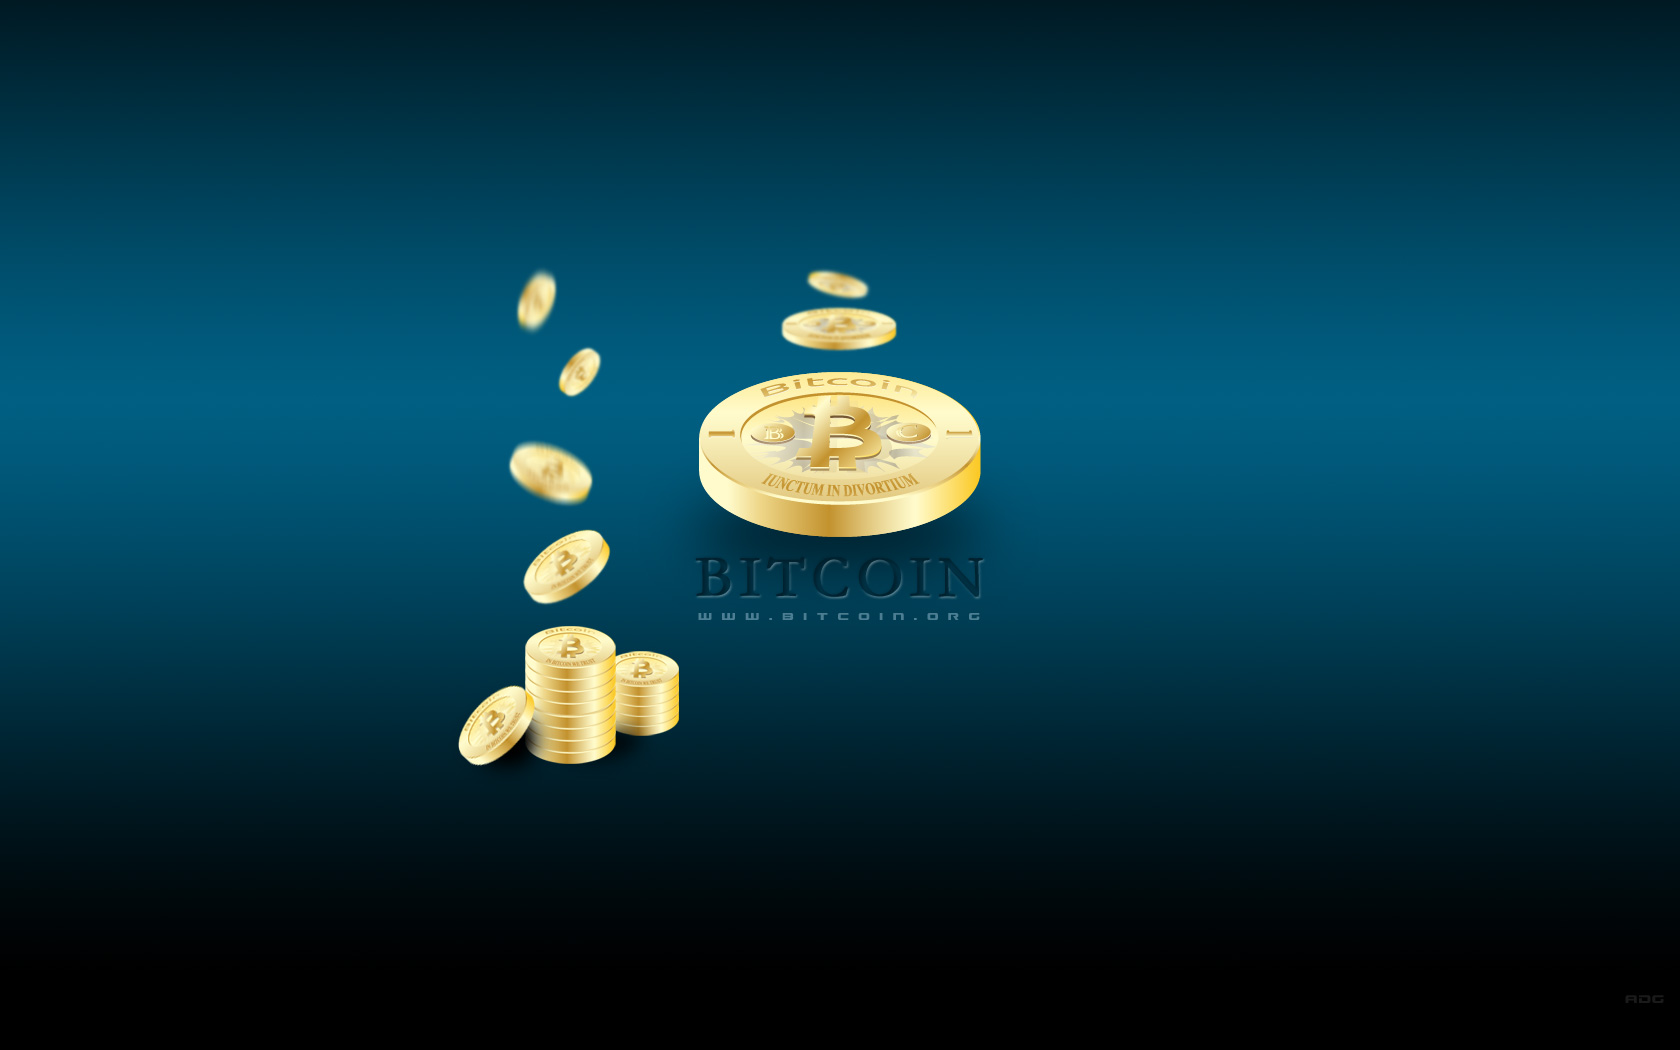 Bitcoin DskTp Wallpaper Blue 2